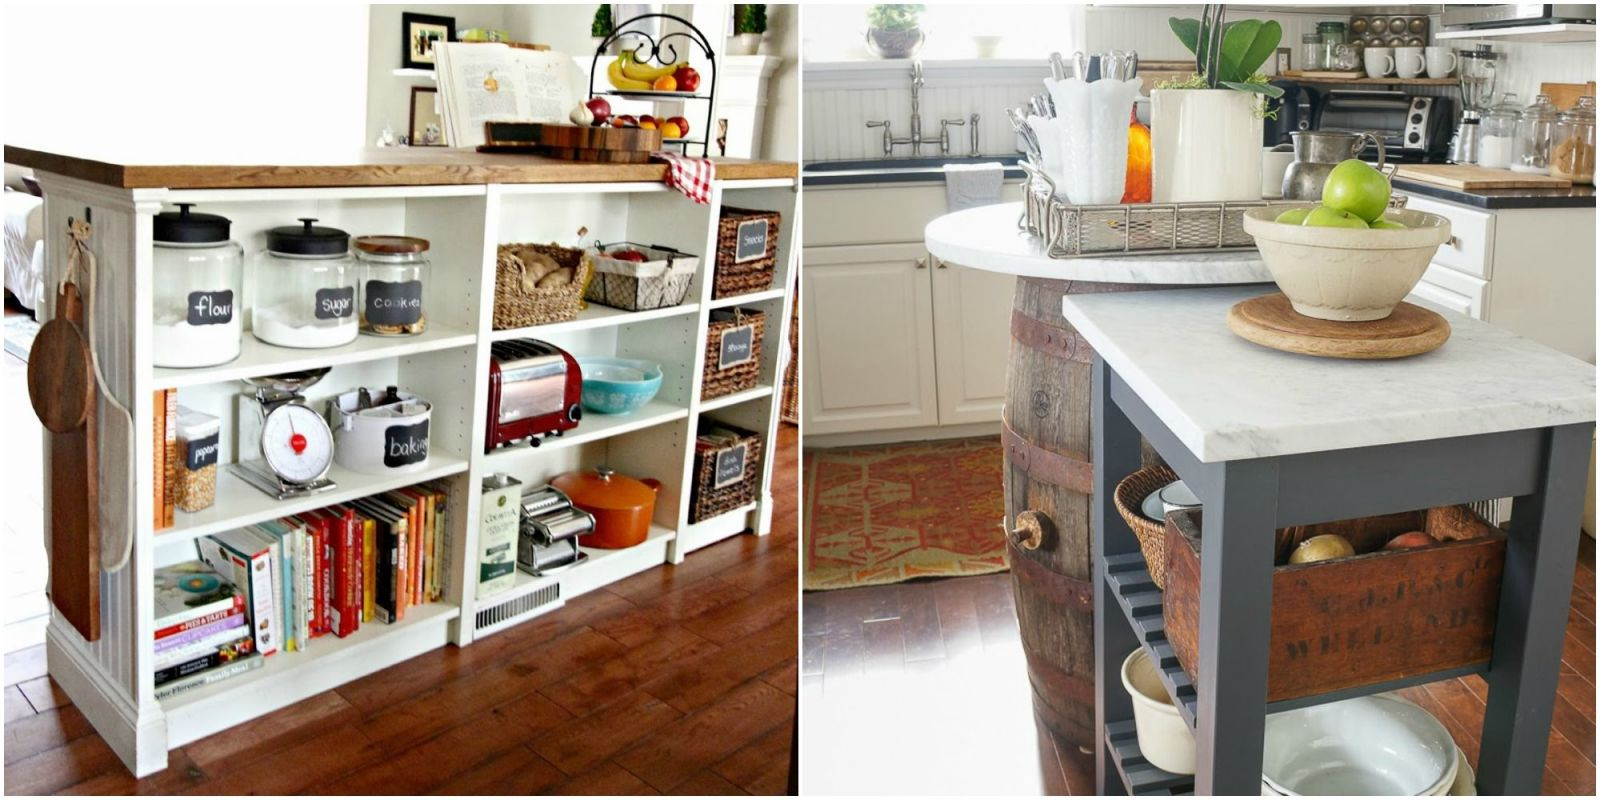 Ikea Kitchen Ideas 12 ikea kitchen ideas - organize your kitchen with ikea hacks